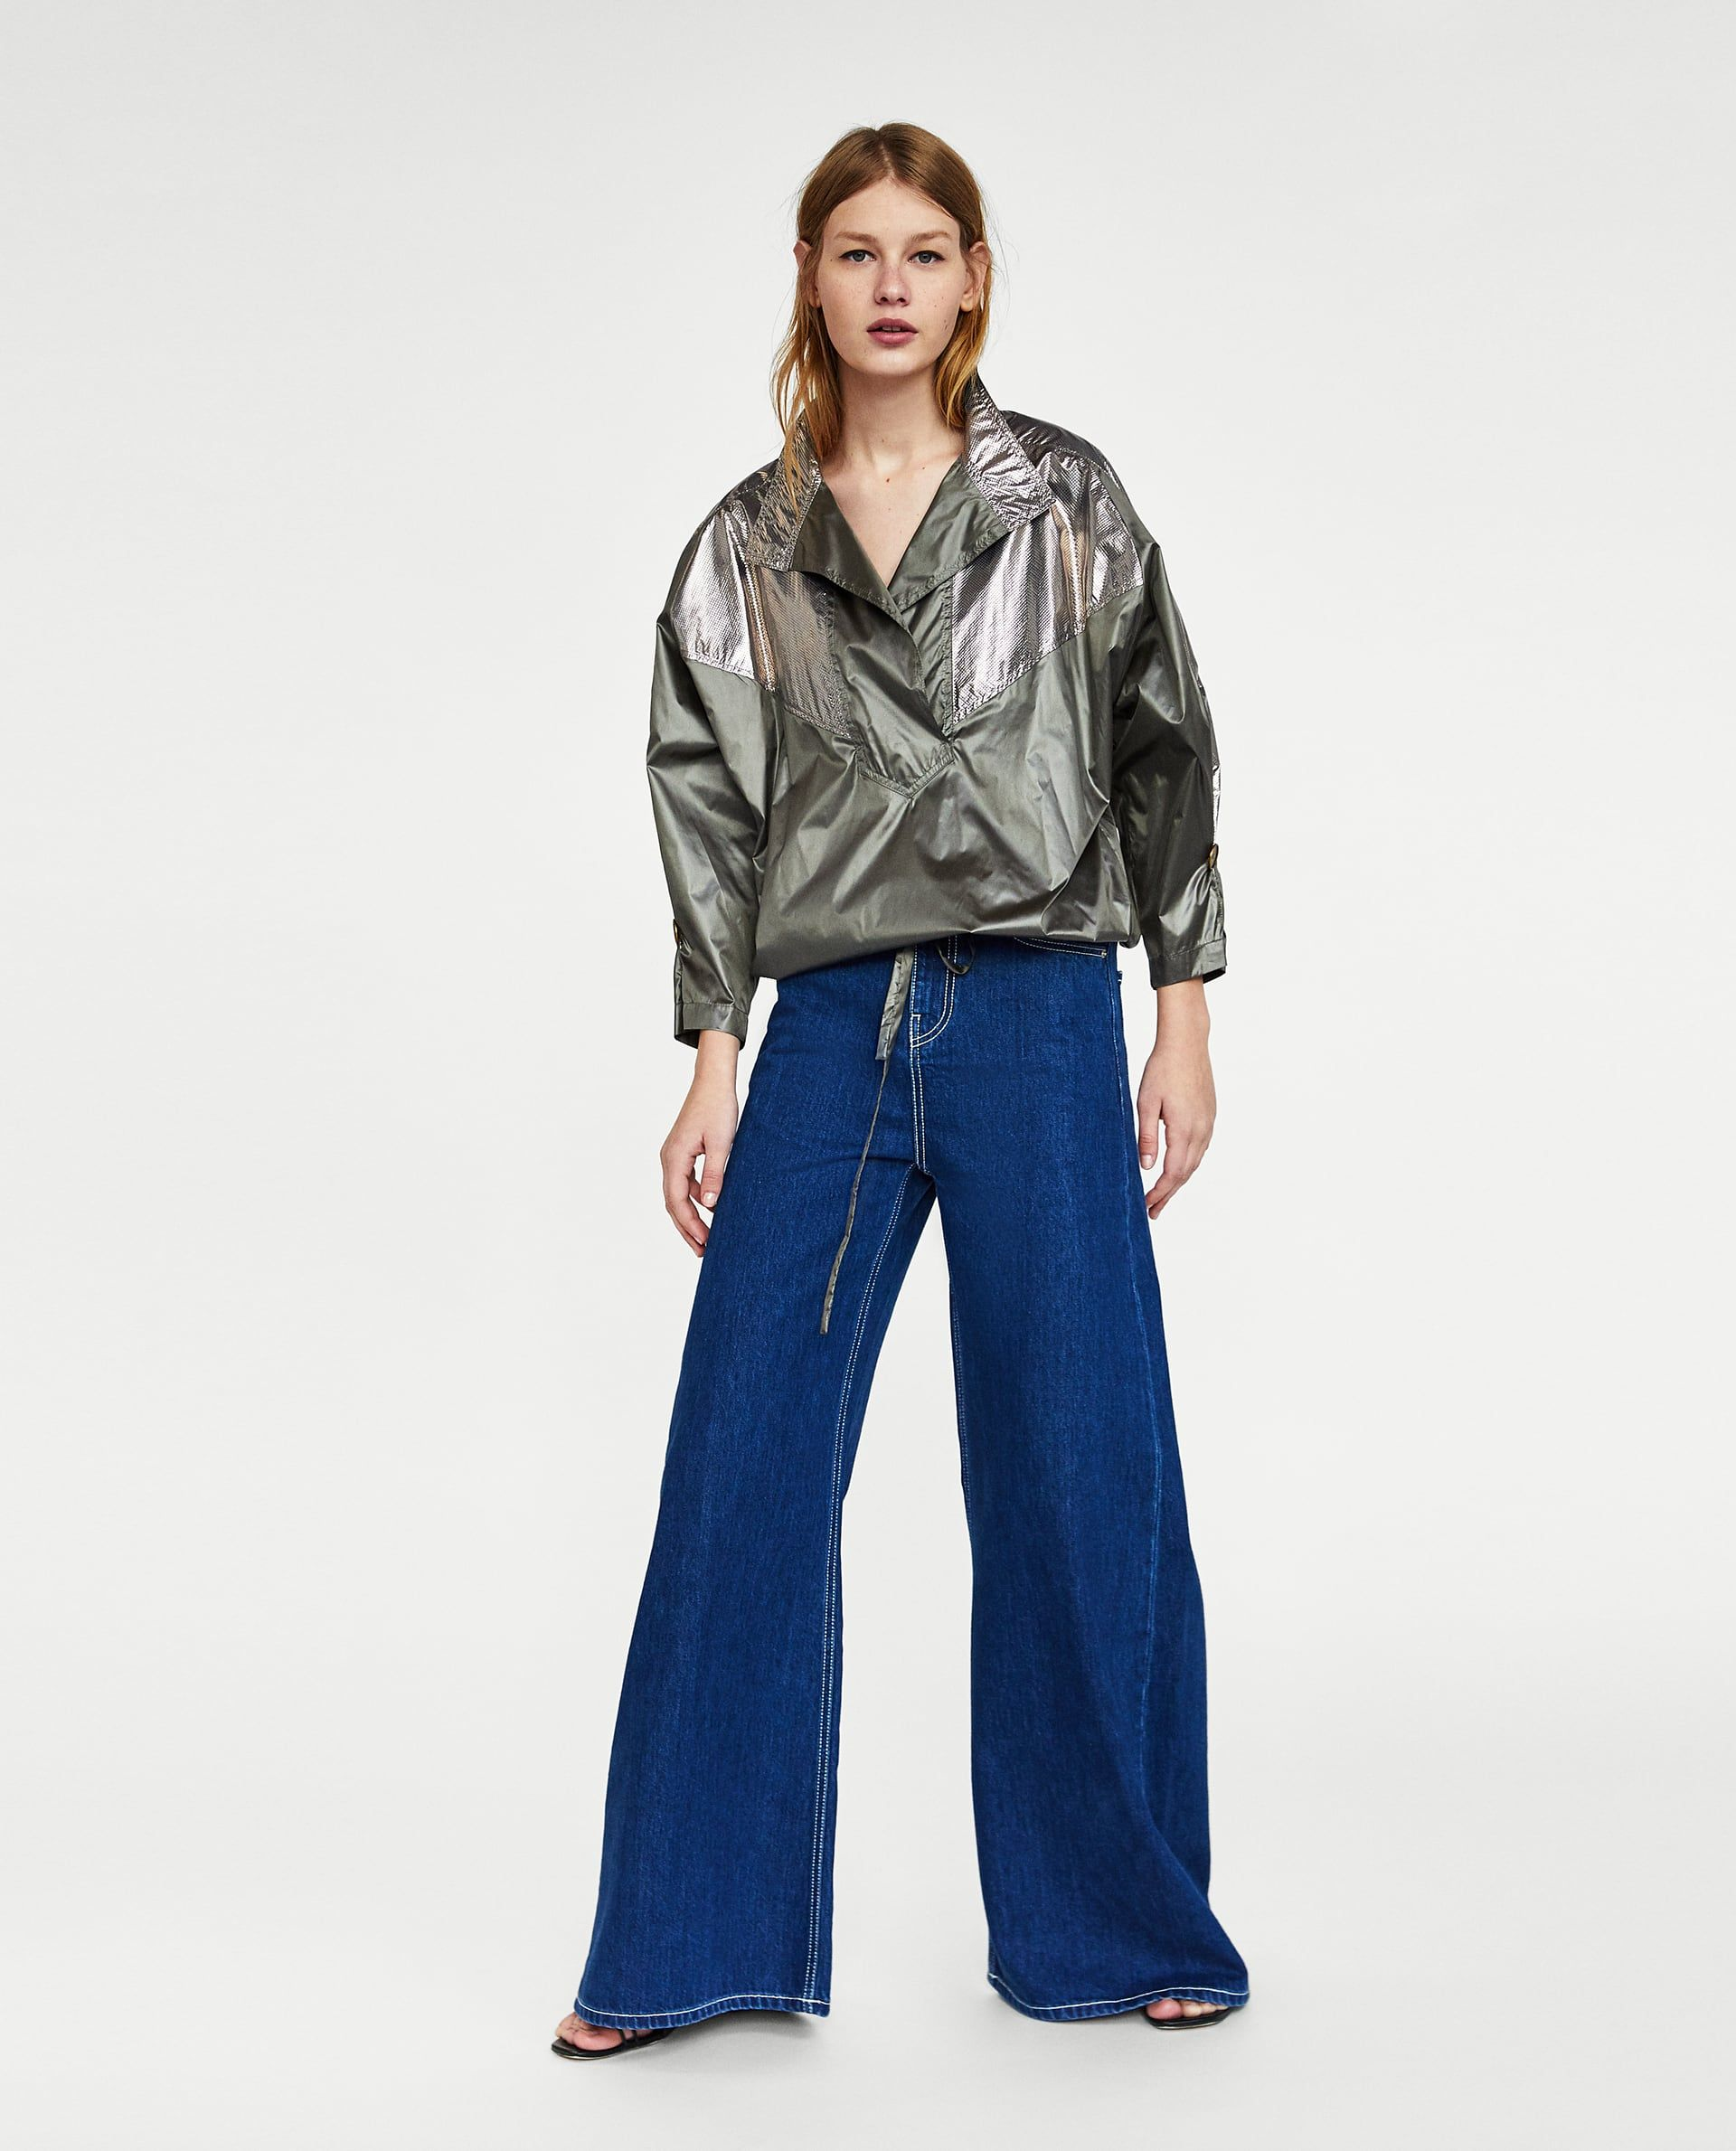 a78cc15343 Women's New In Clothes | New Collection Online | ZARA United States ...